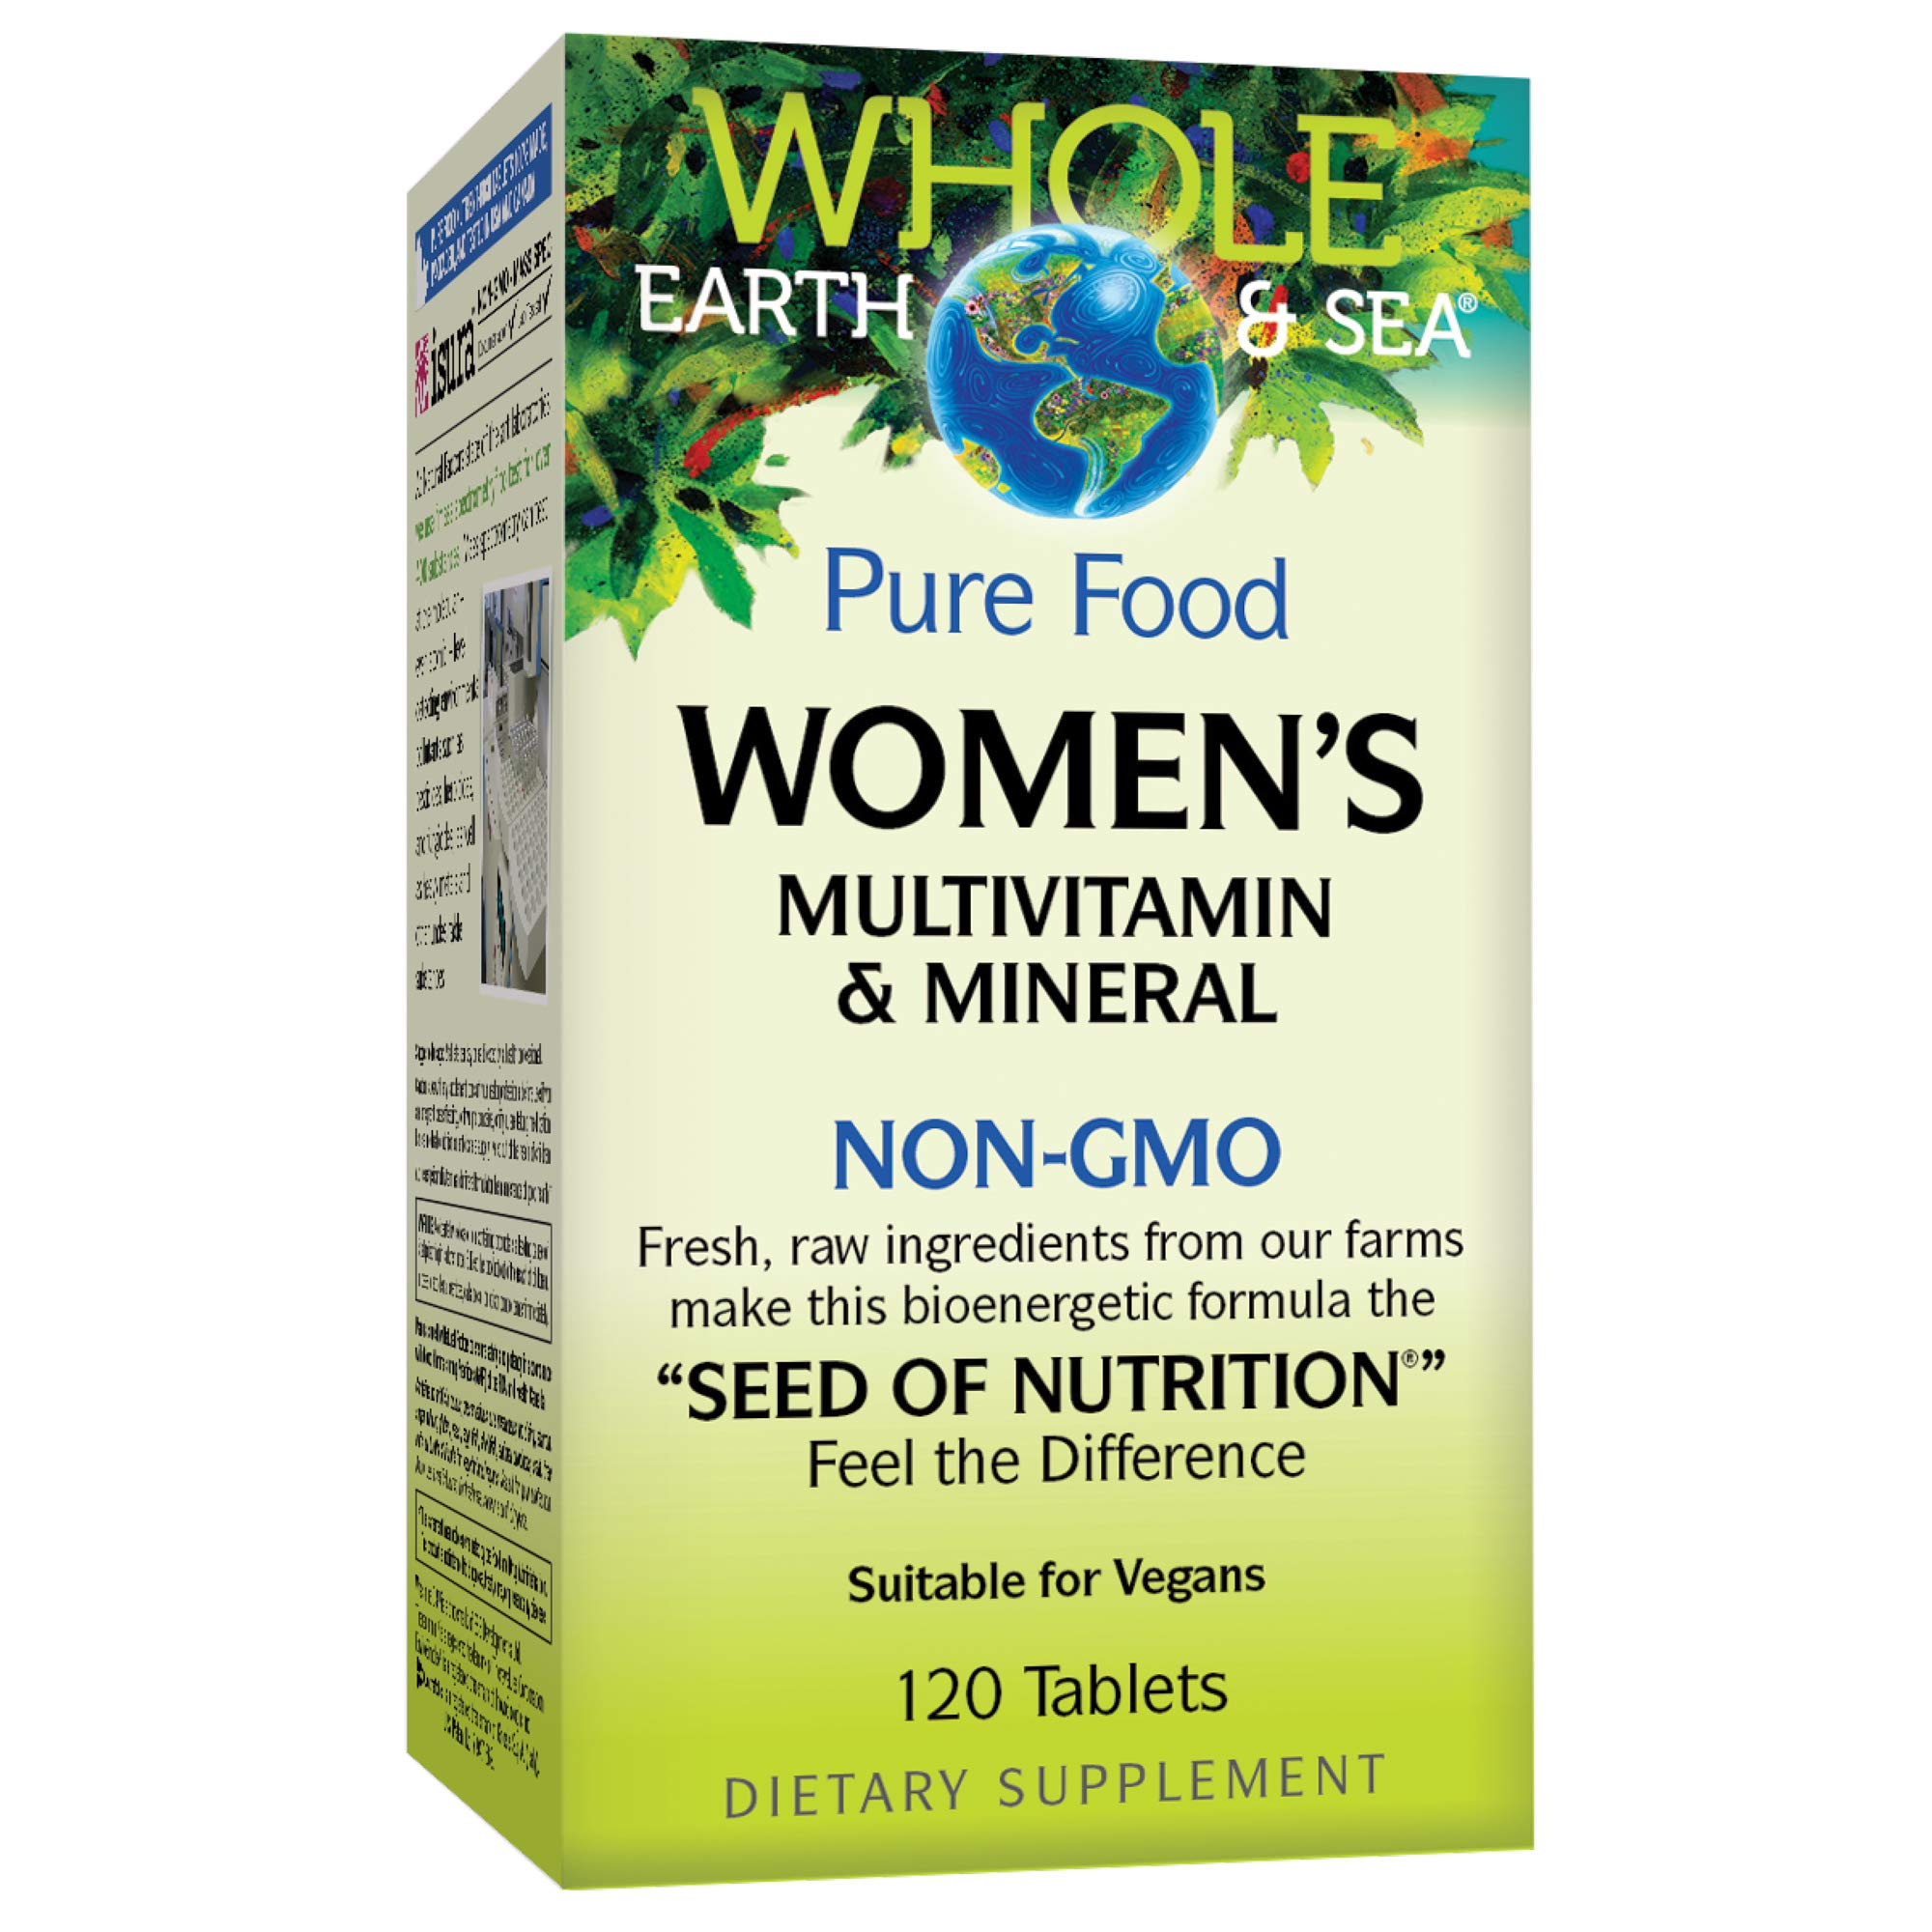 Whole Earth & Sea from Natural Factors, Women's Multivitamin & Mineral, Whole Food Supplement, Vegan and Gluten Free, 120 Tablets (60 Servings) by Natural Factors